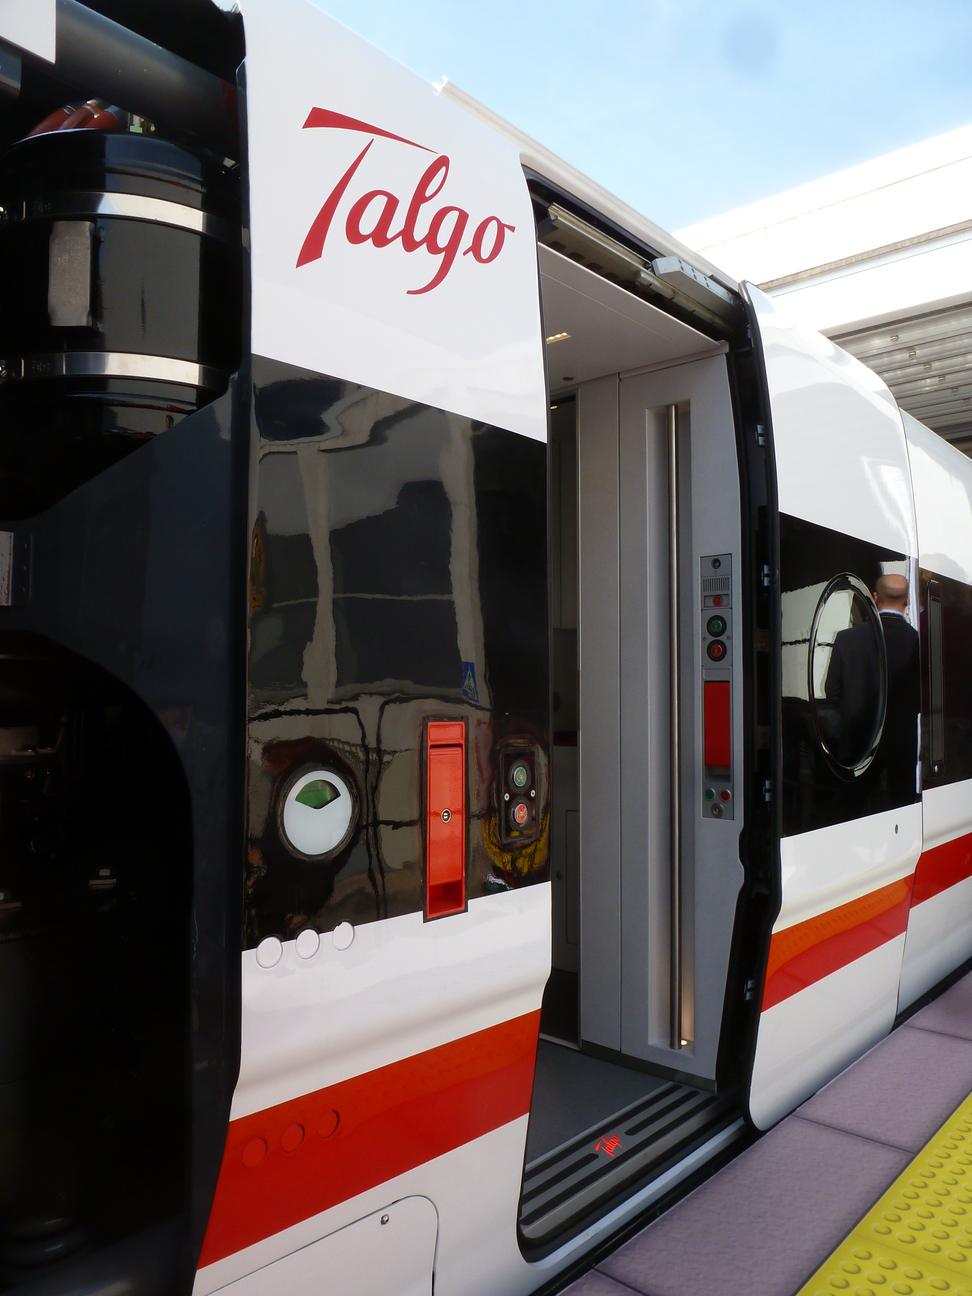 http://railfaneurope.net/pix/es/private/builder/Talgo/Avril/Avril_9it12.jpg